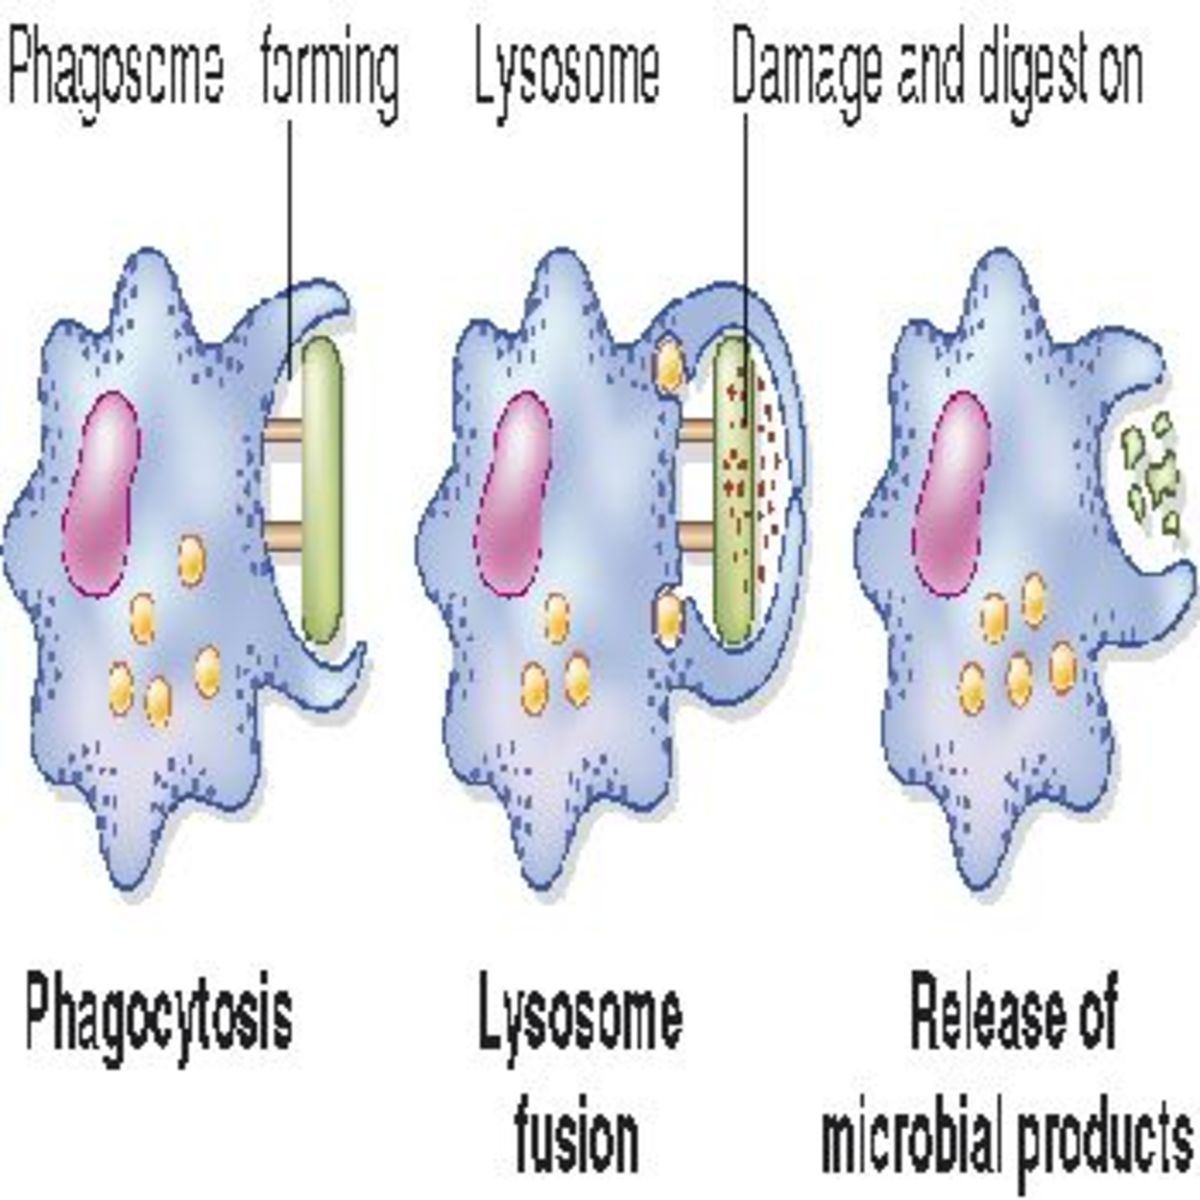 A diagram of phagocytosis in action.